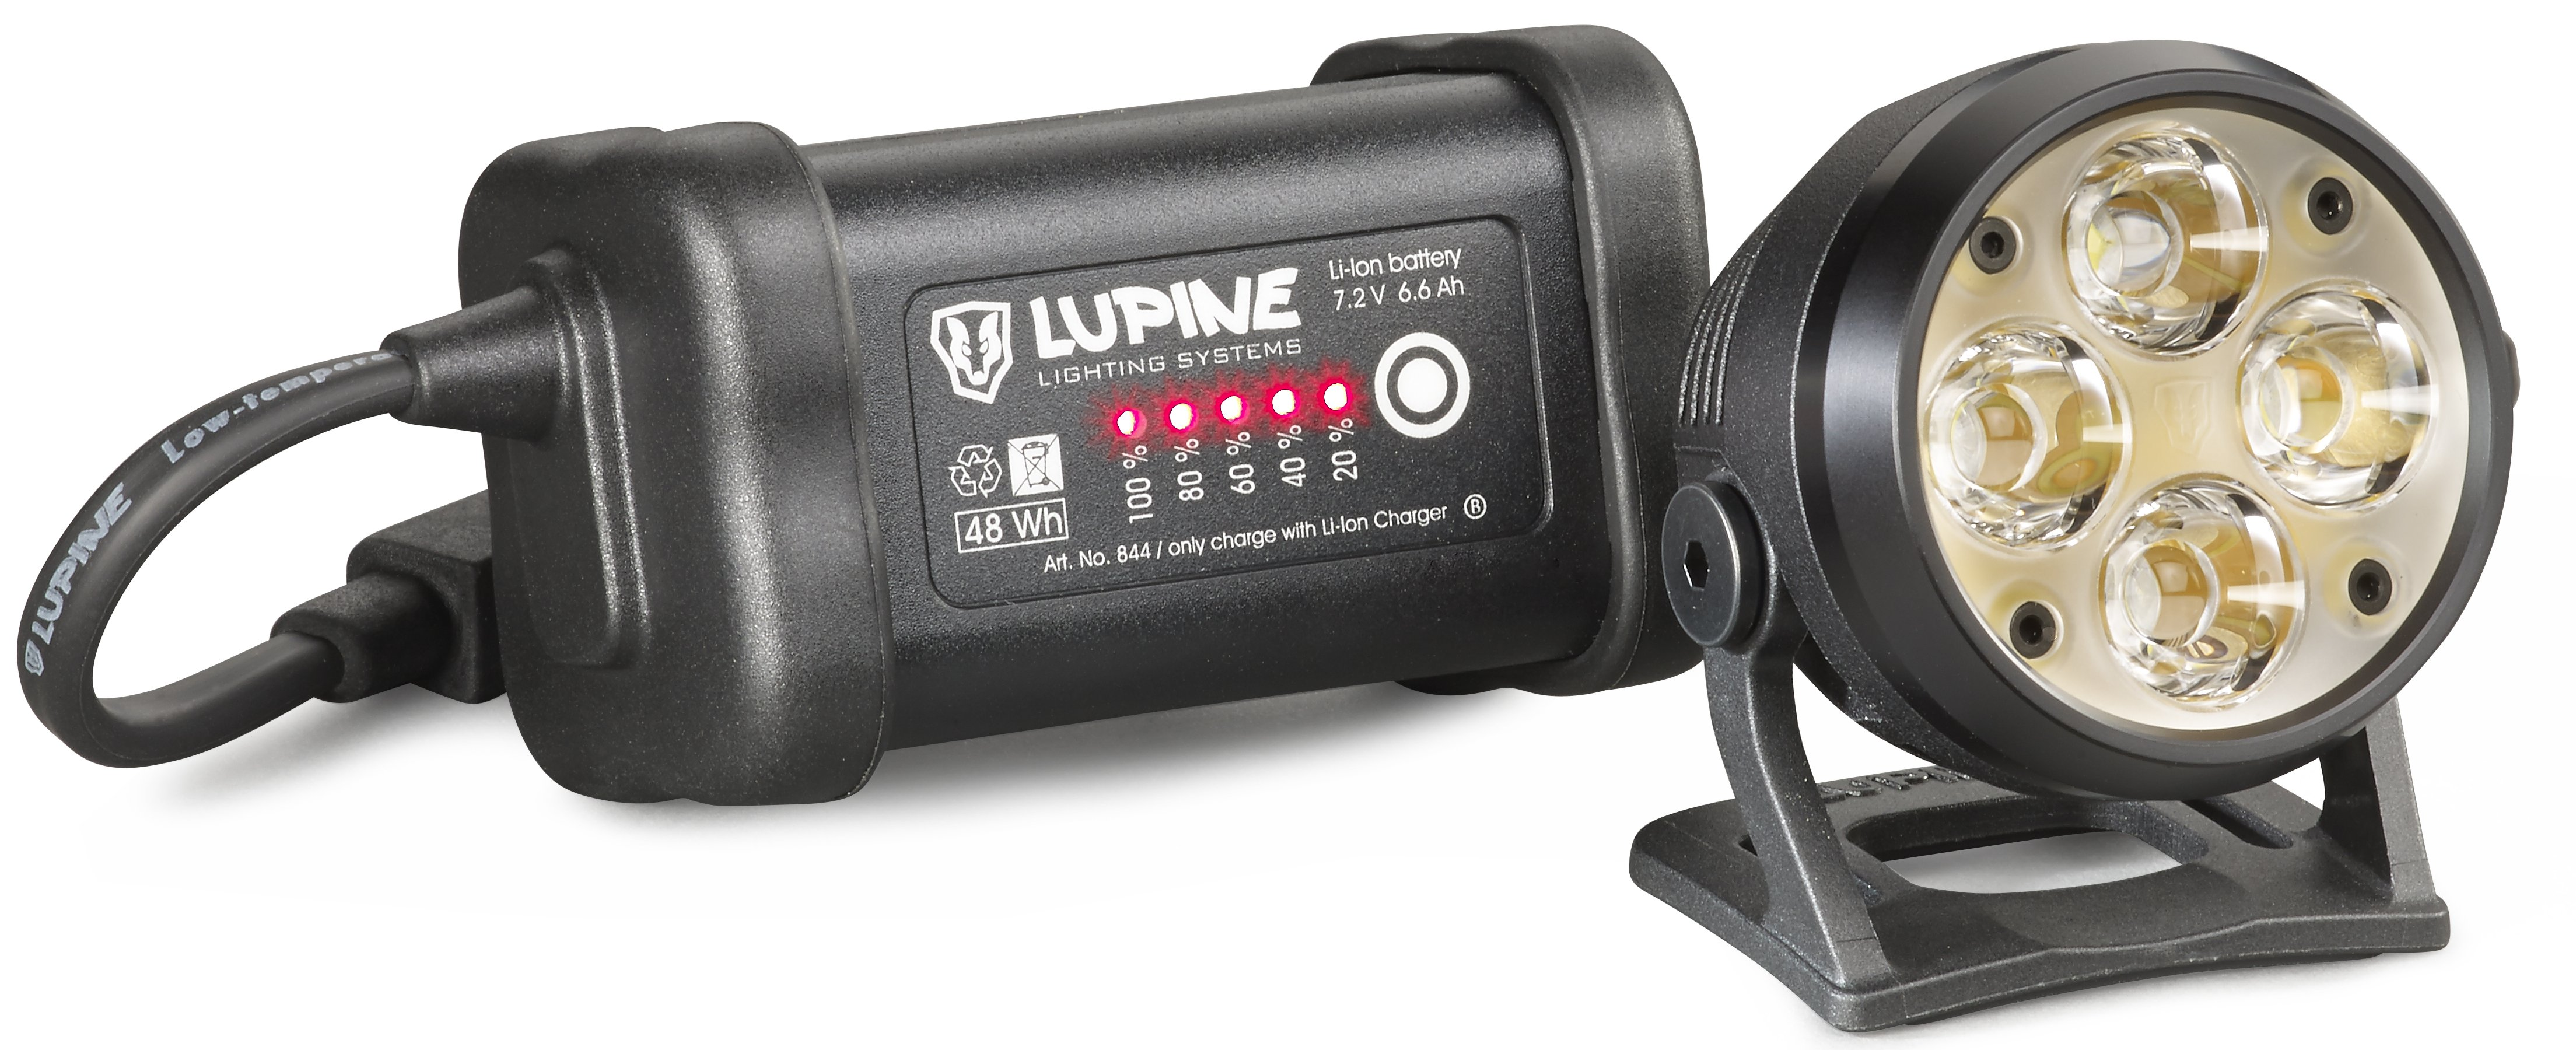 Lupine Wilma 7 Bicycle SmartCore Lighting System 3200 Lumens